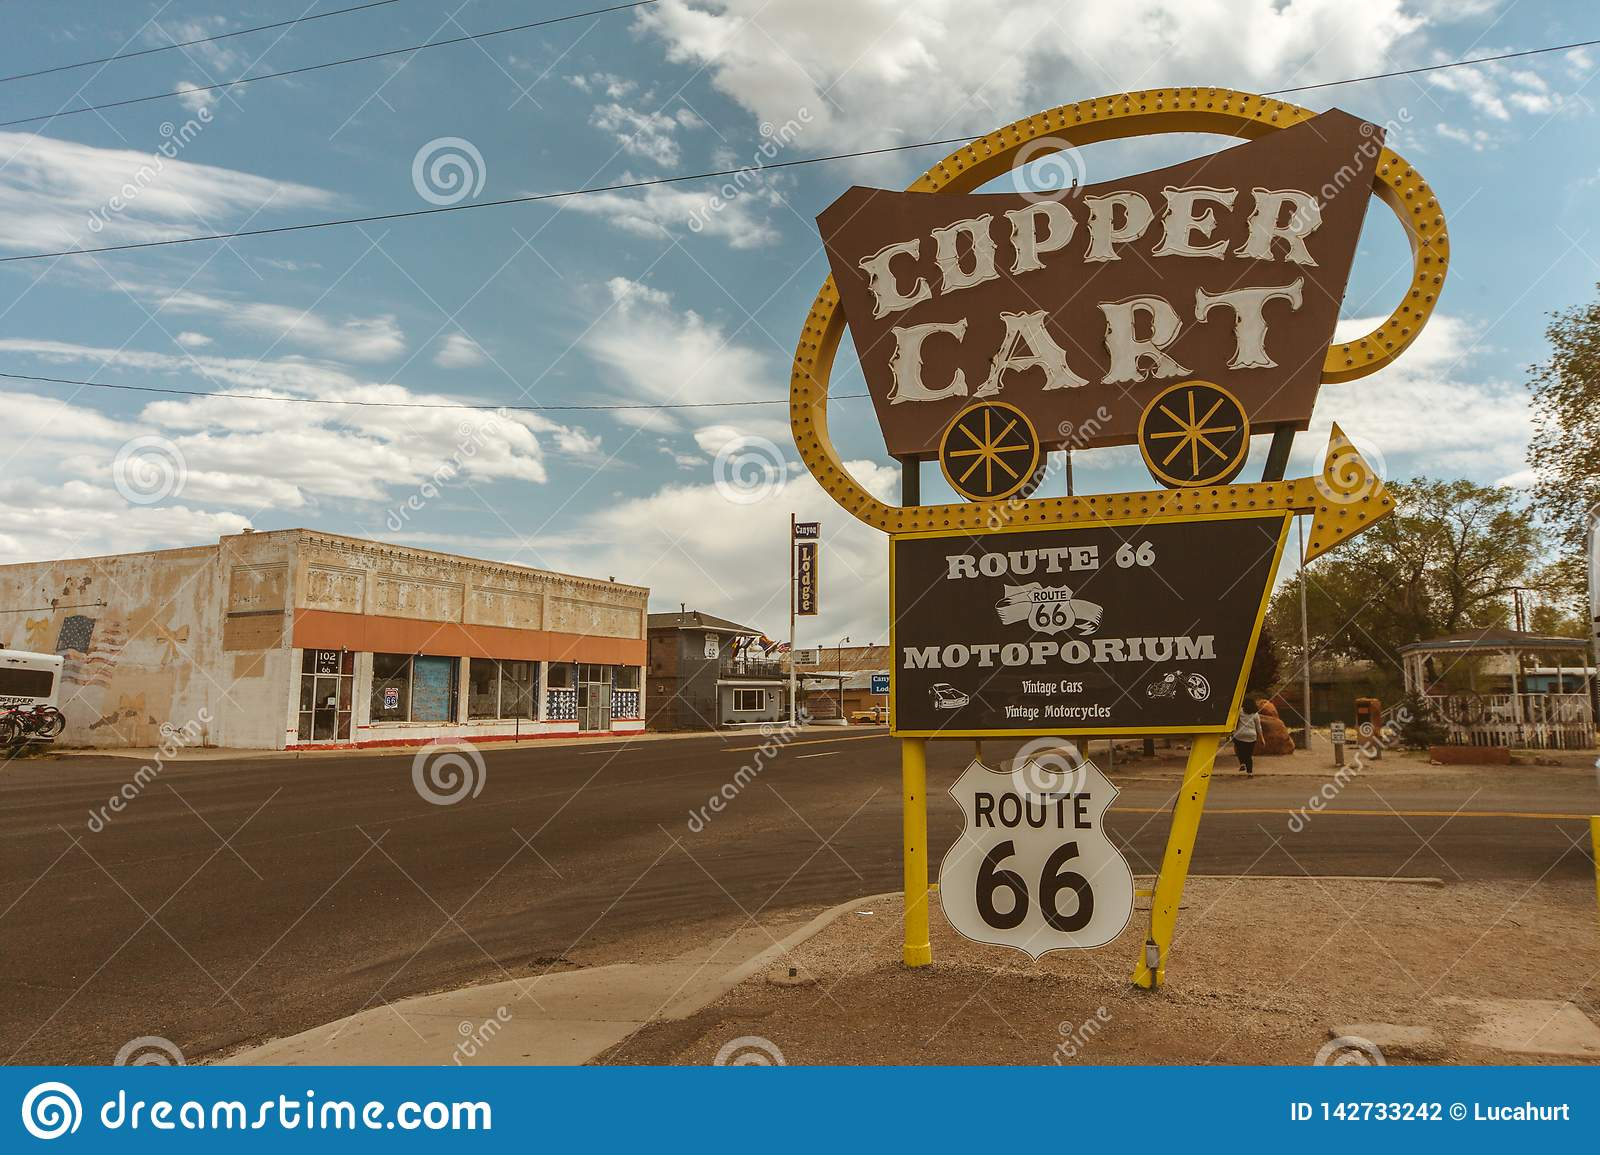 Koperkar - Route 66 Arizona - de V.S.